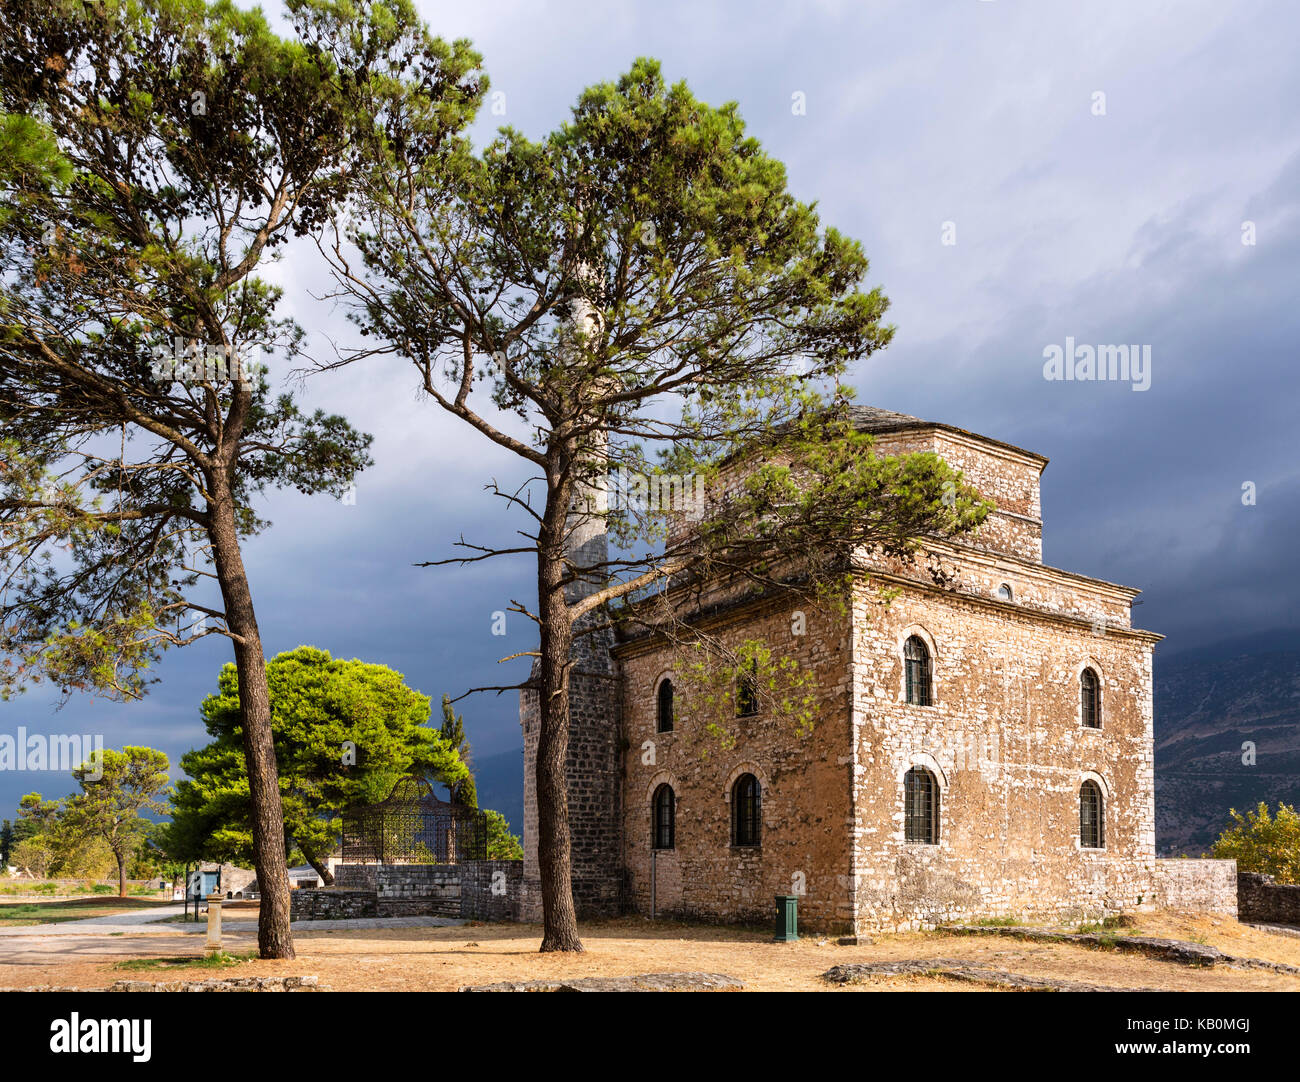 The Fethiye Mosque (Fetiyie Mosque) with the grave of Ali Pasha to the left, Inner Citadel, Ioannina, Epirus, Greece - Stock Image